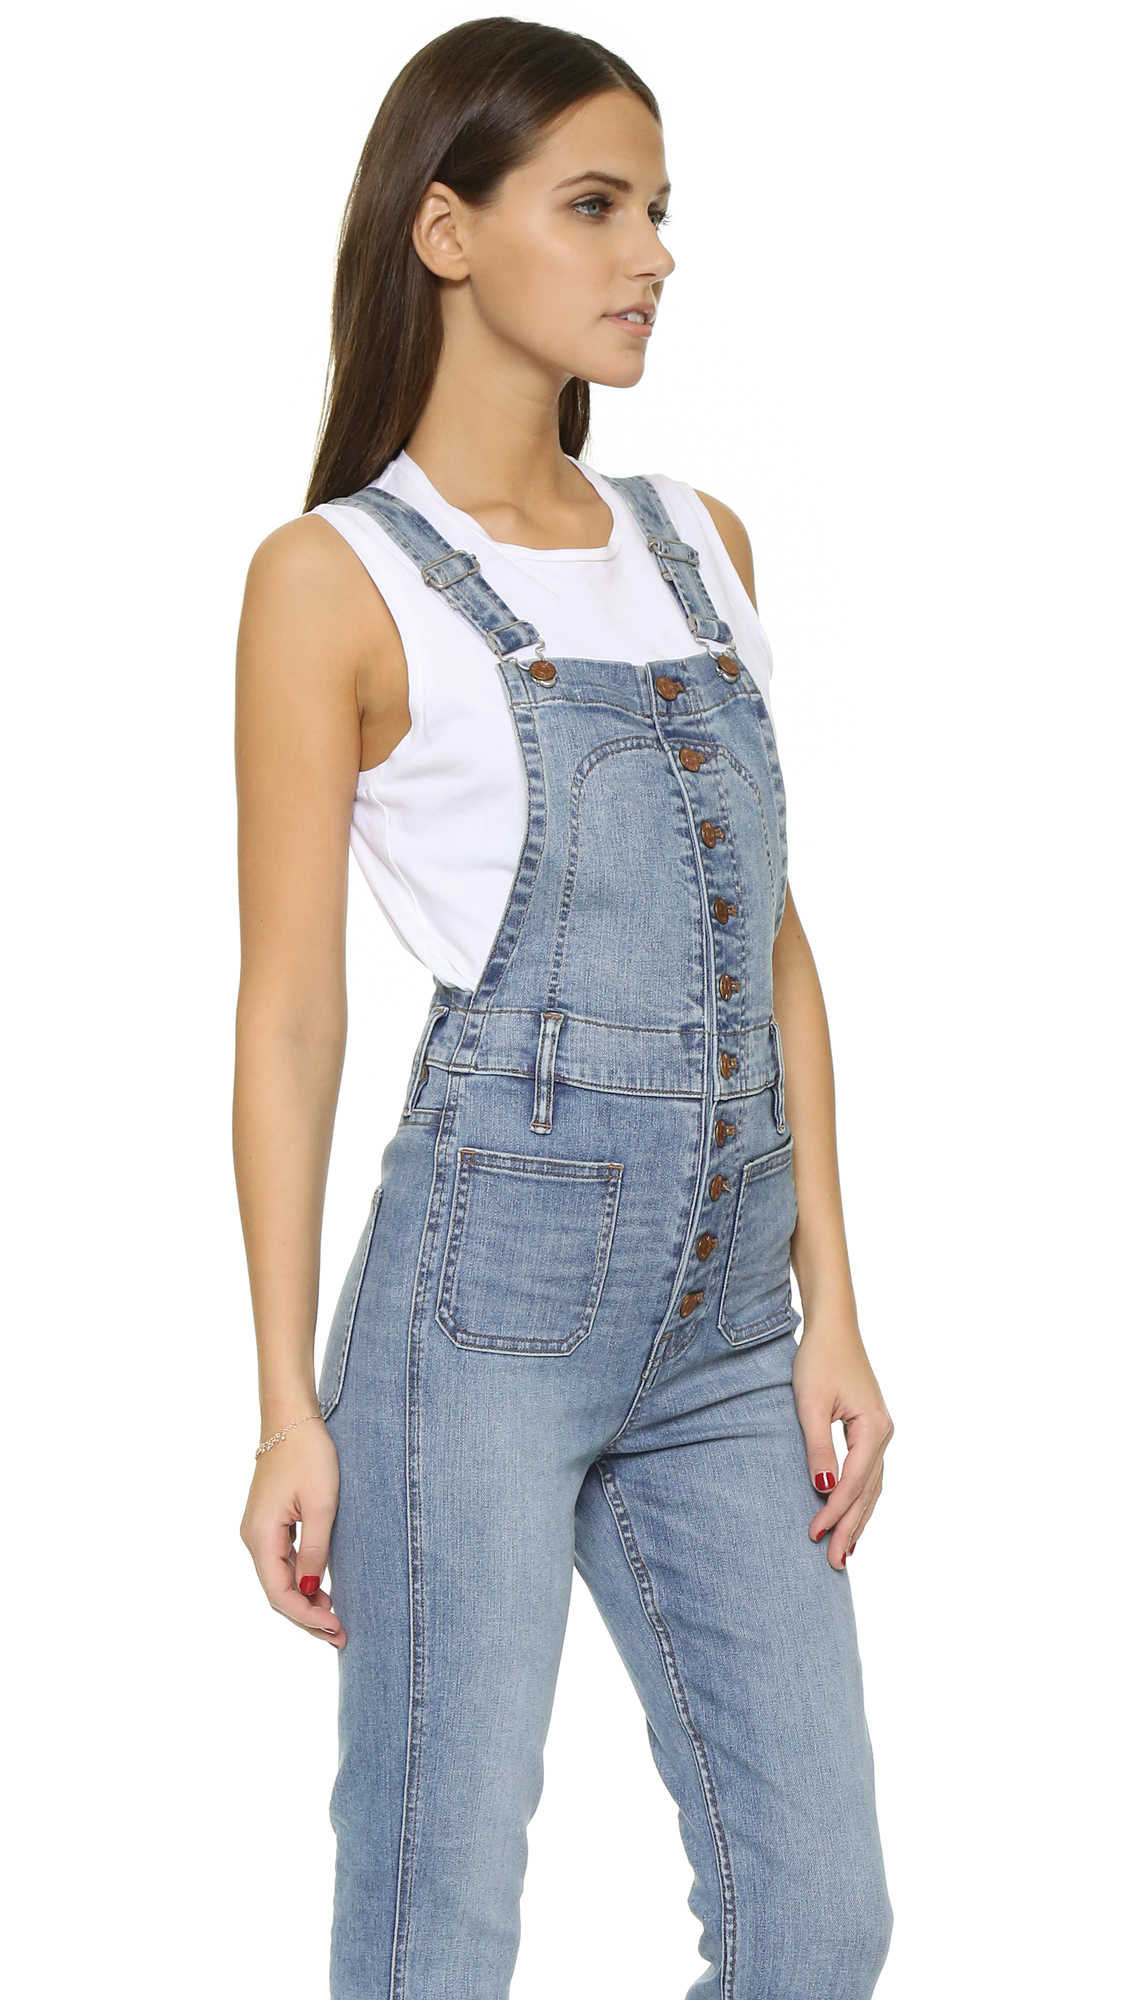 Overalls Are Making A Comeback As The Latest Fashion Trend: Madewell Cropped Overalls With Button Front In Blue